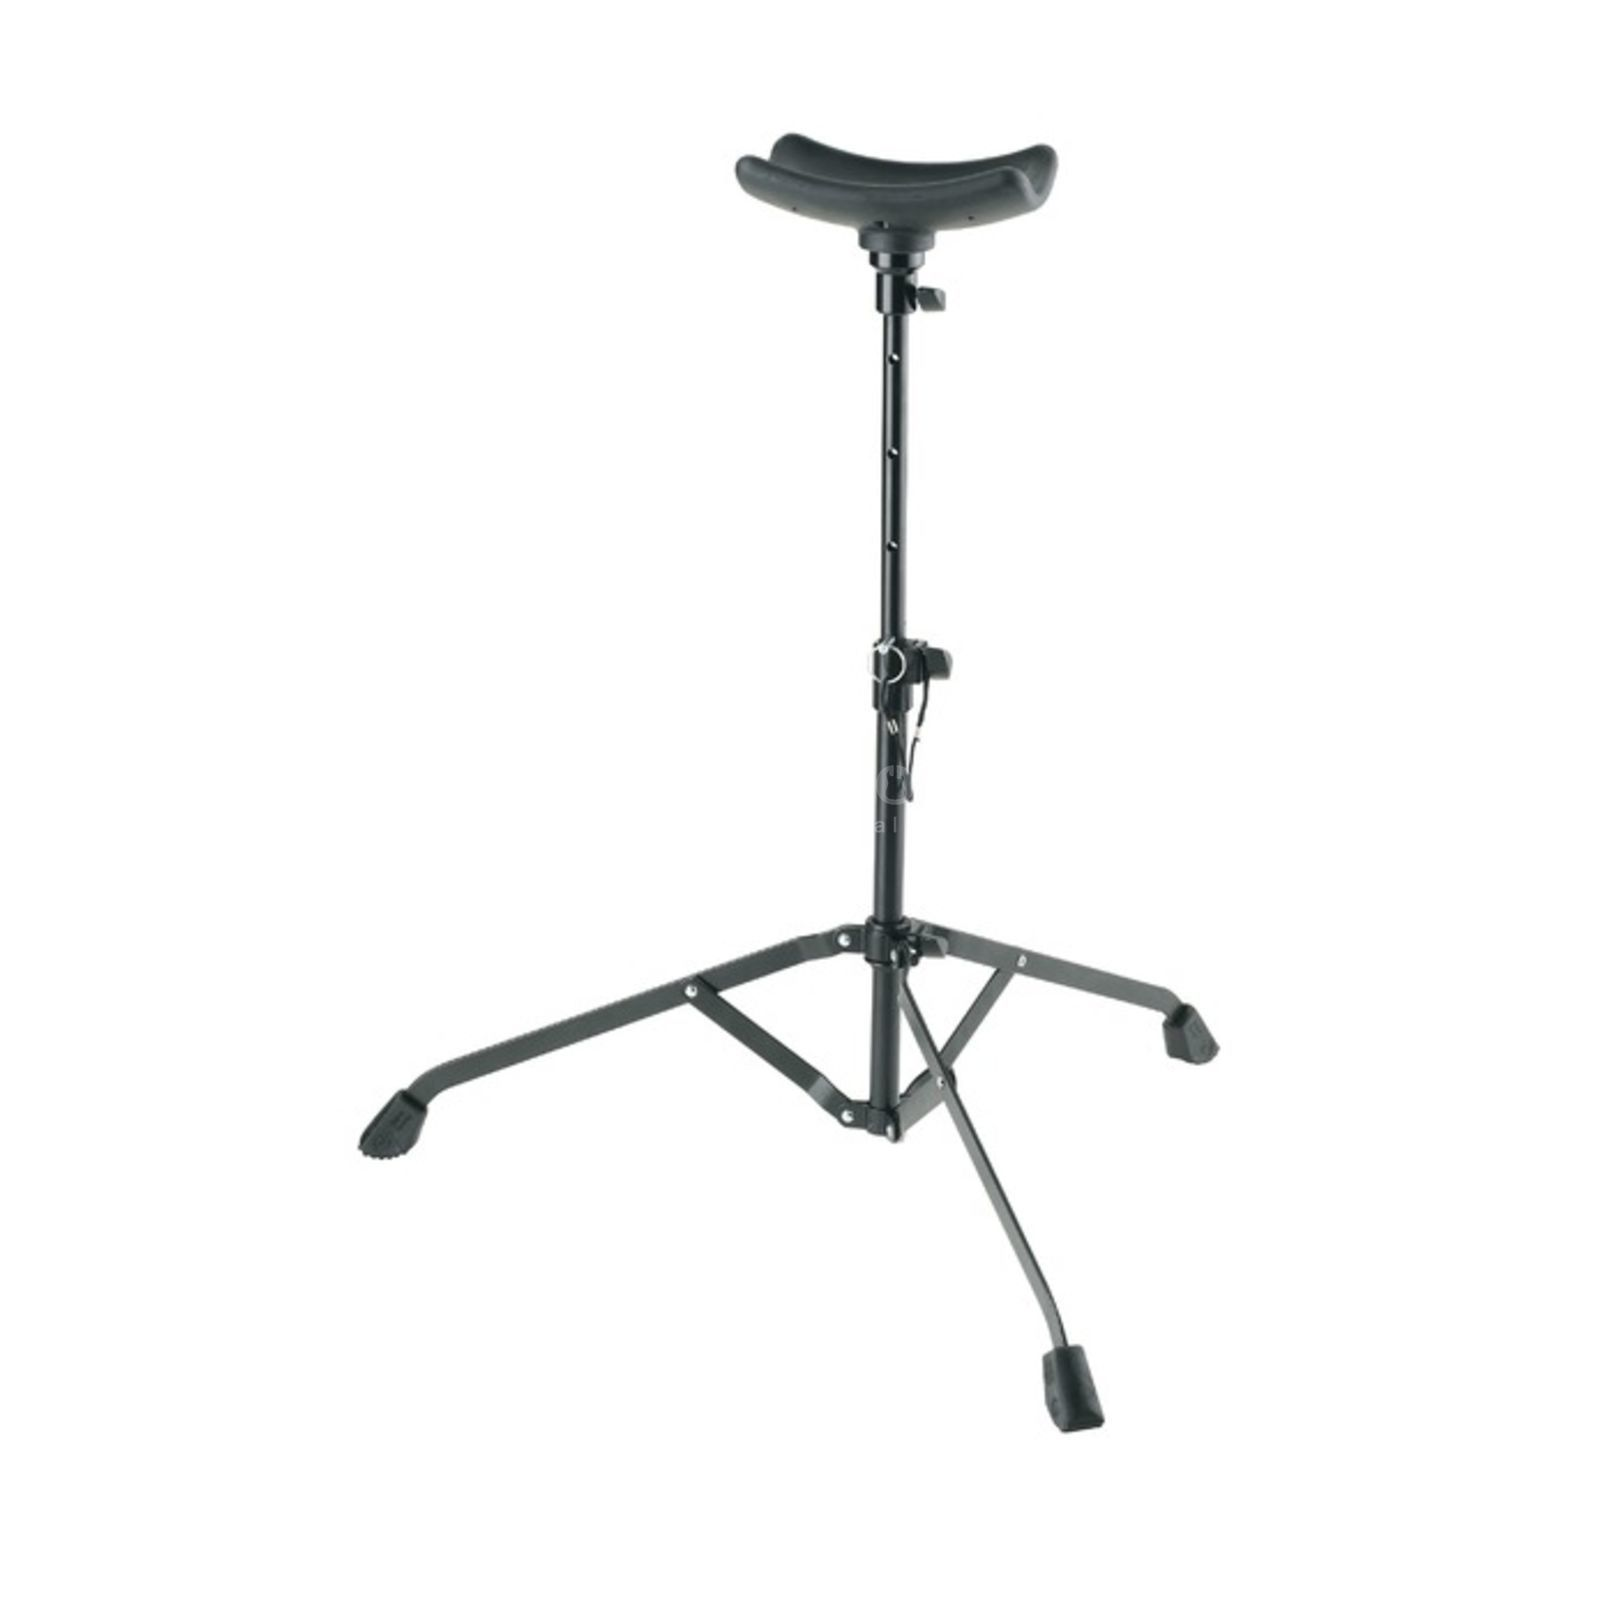 König & Meyer 14950 Tuba Playing Stand - Black Product Image